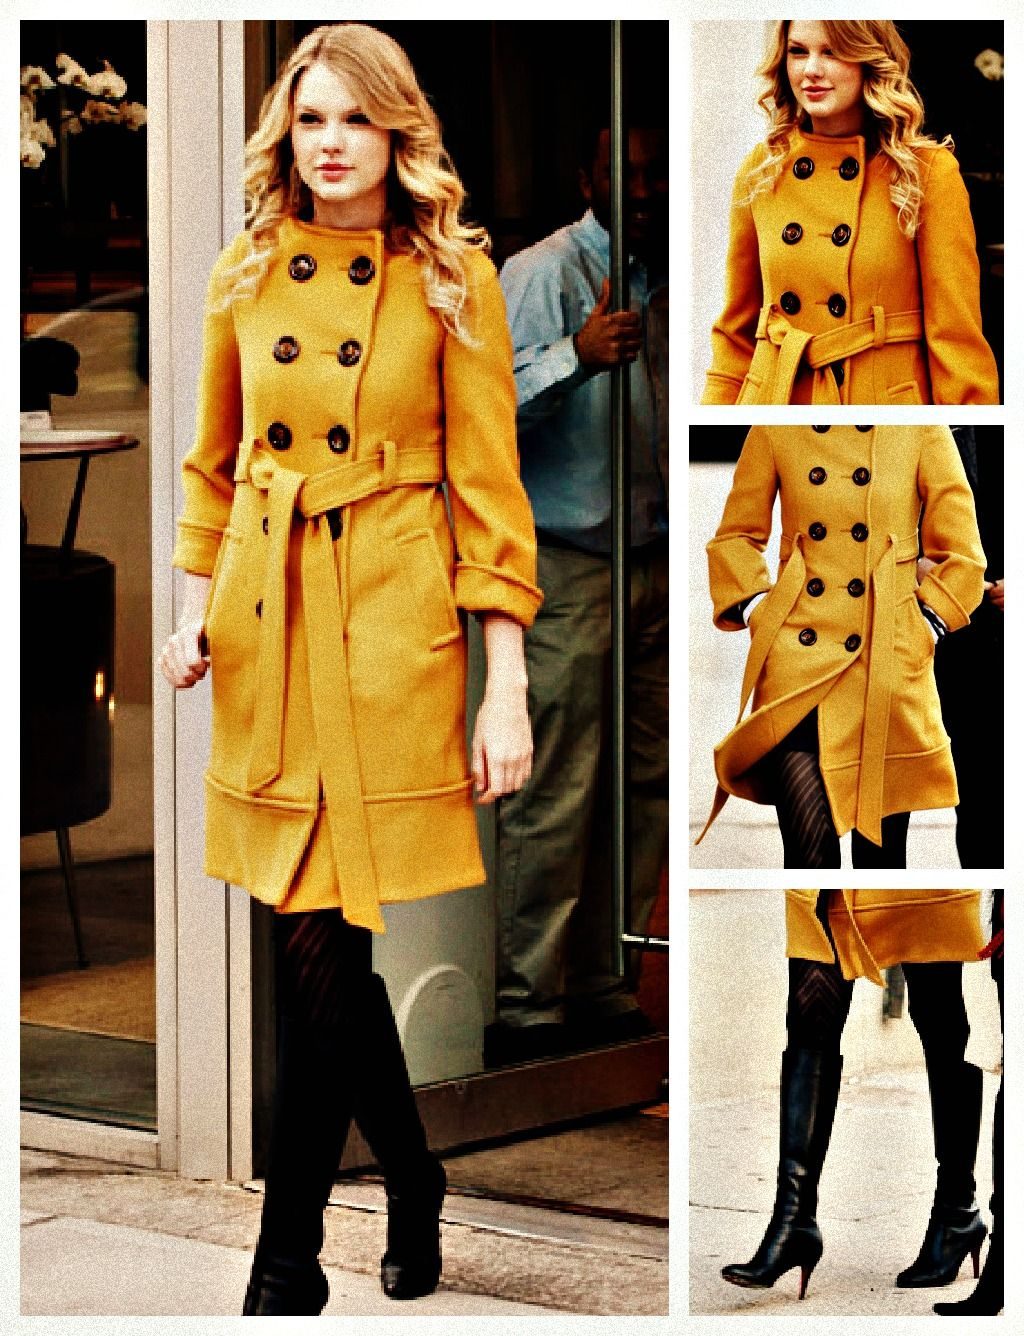 Top 5 favourite Taylor Swift outfits  Candids -January 12, 2009    Kate Spade coat  Urban Outfitters tights  Christian Louboutin boots